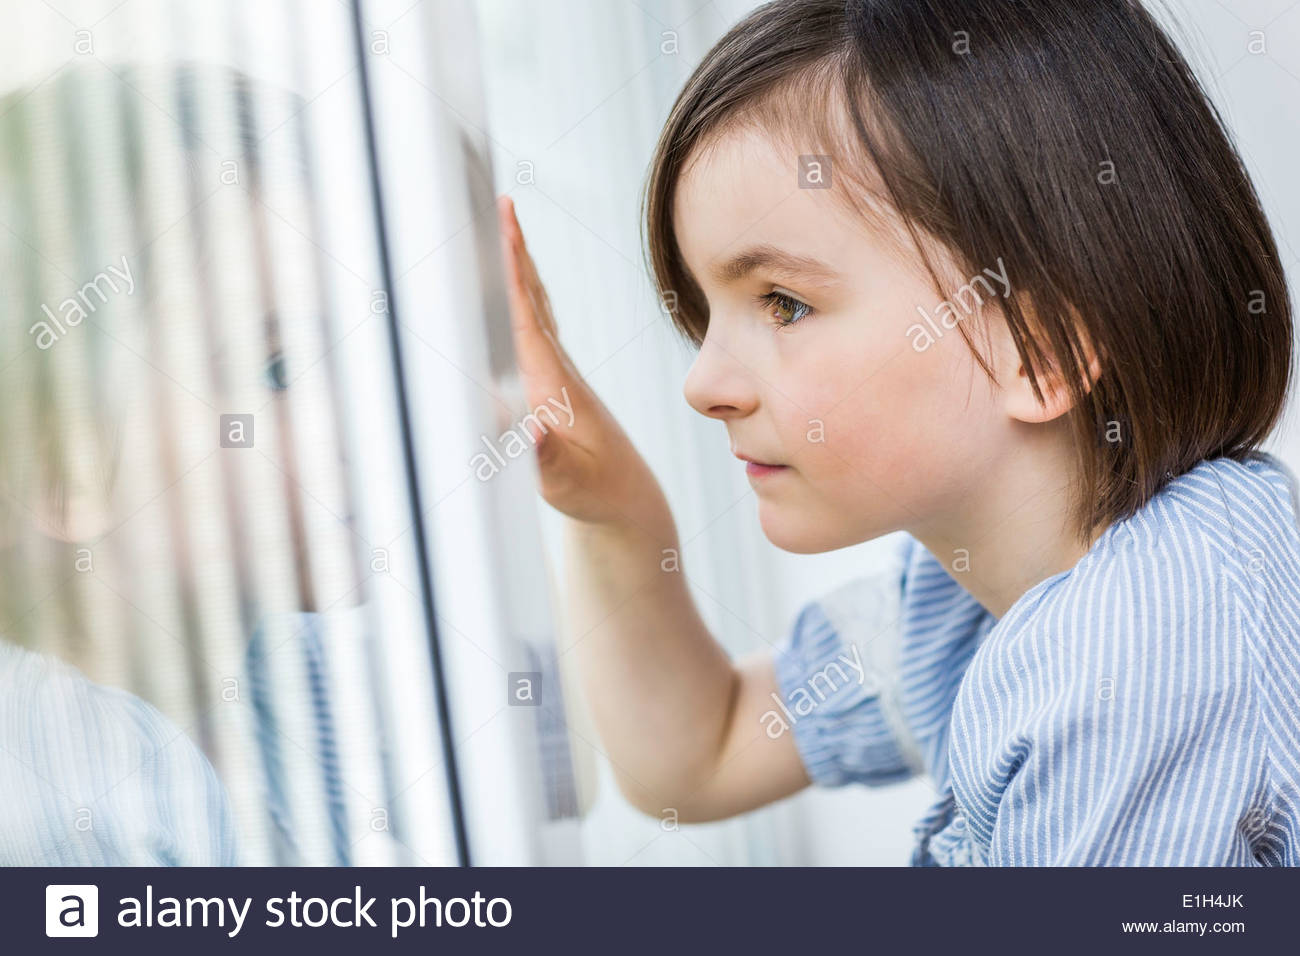 Young girl looking out of window - Stock Image